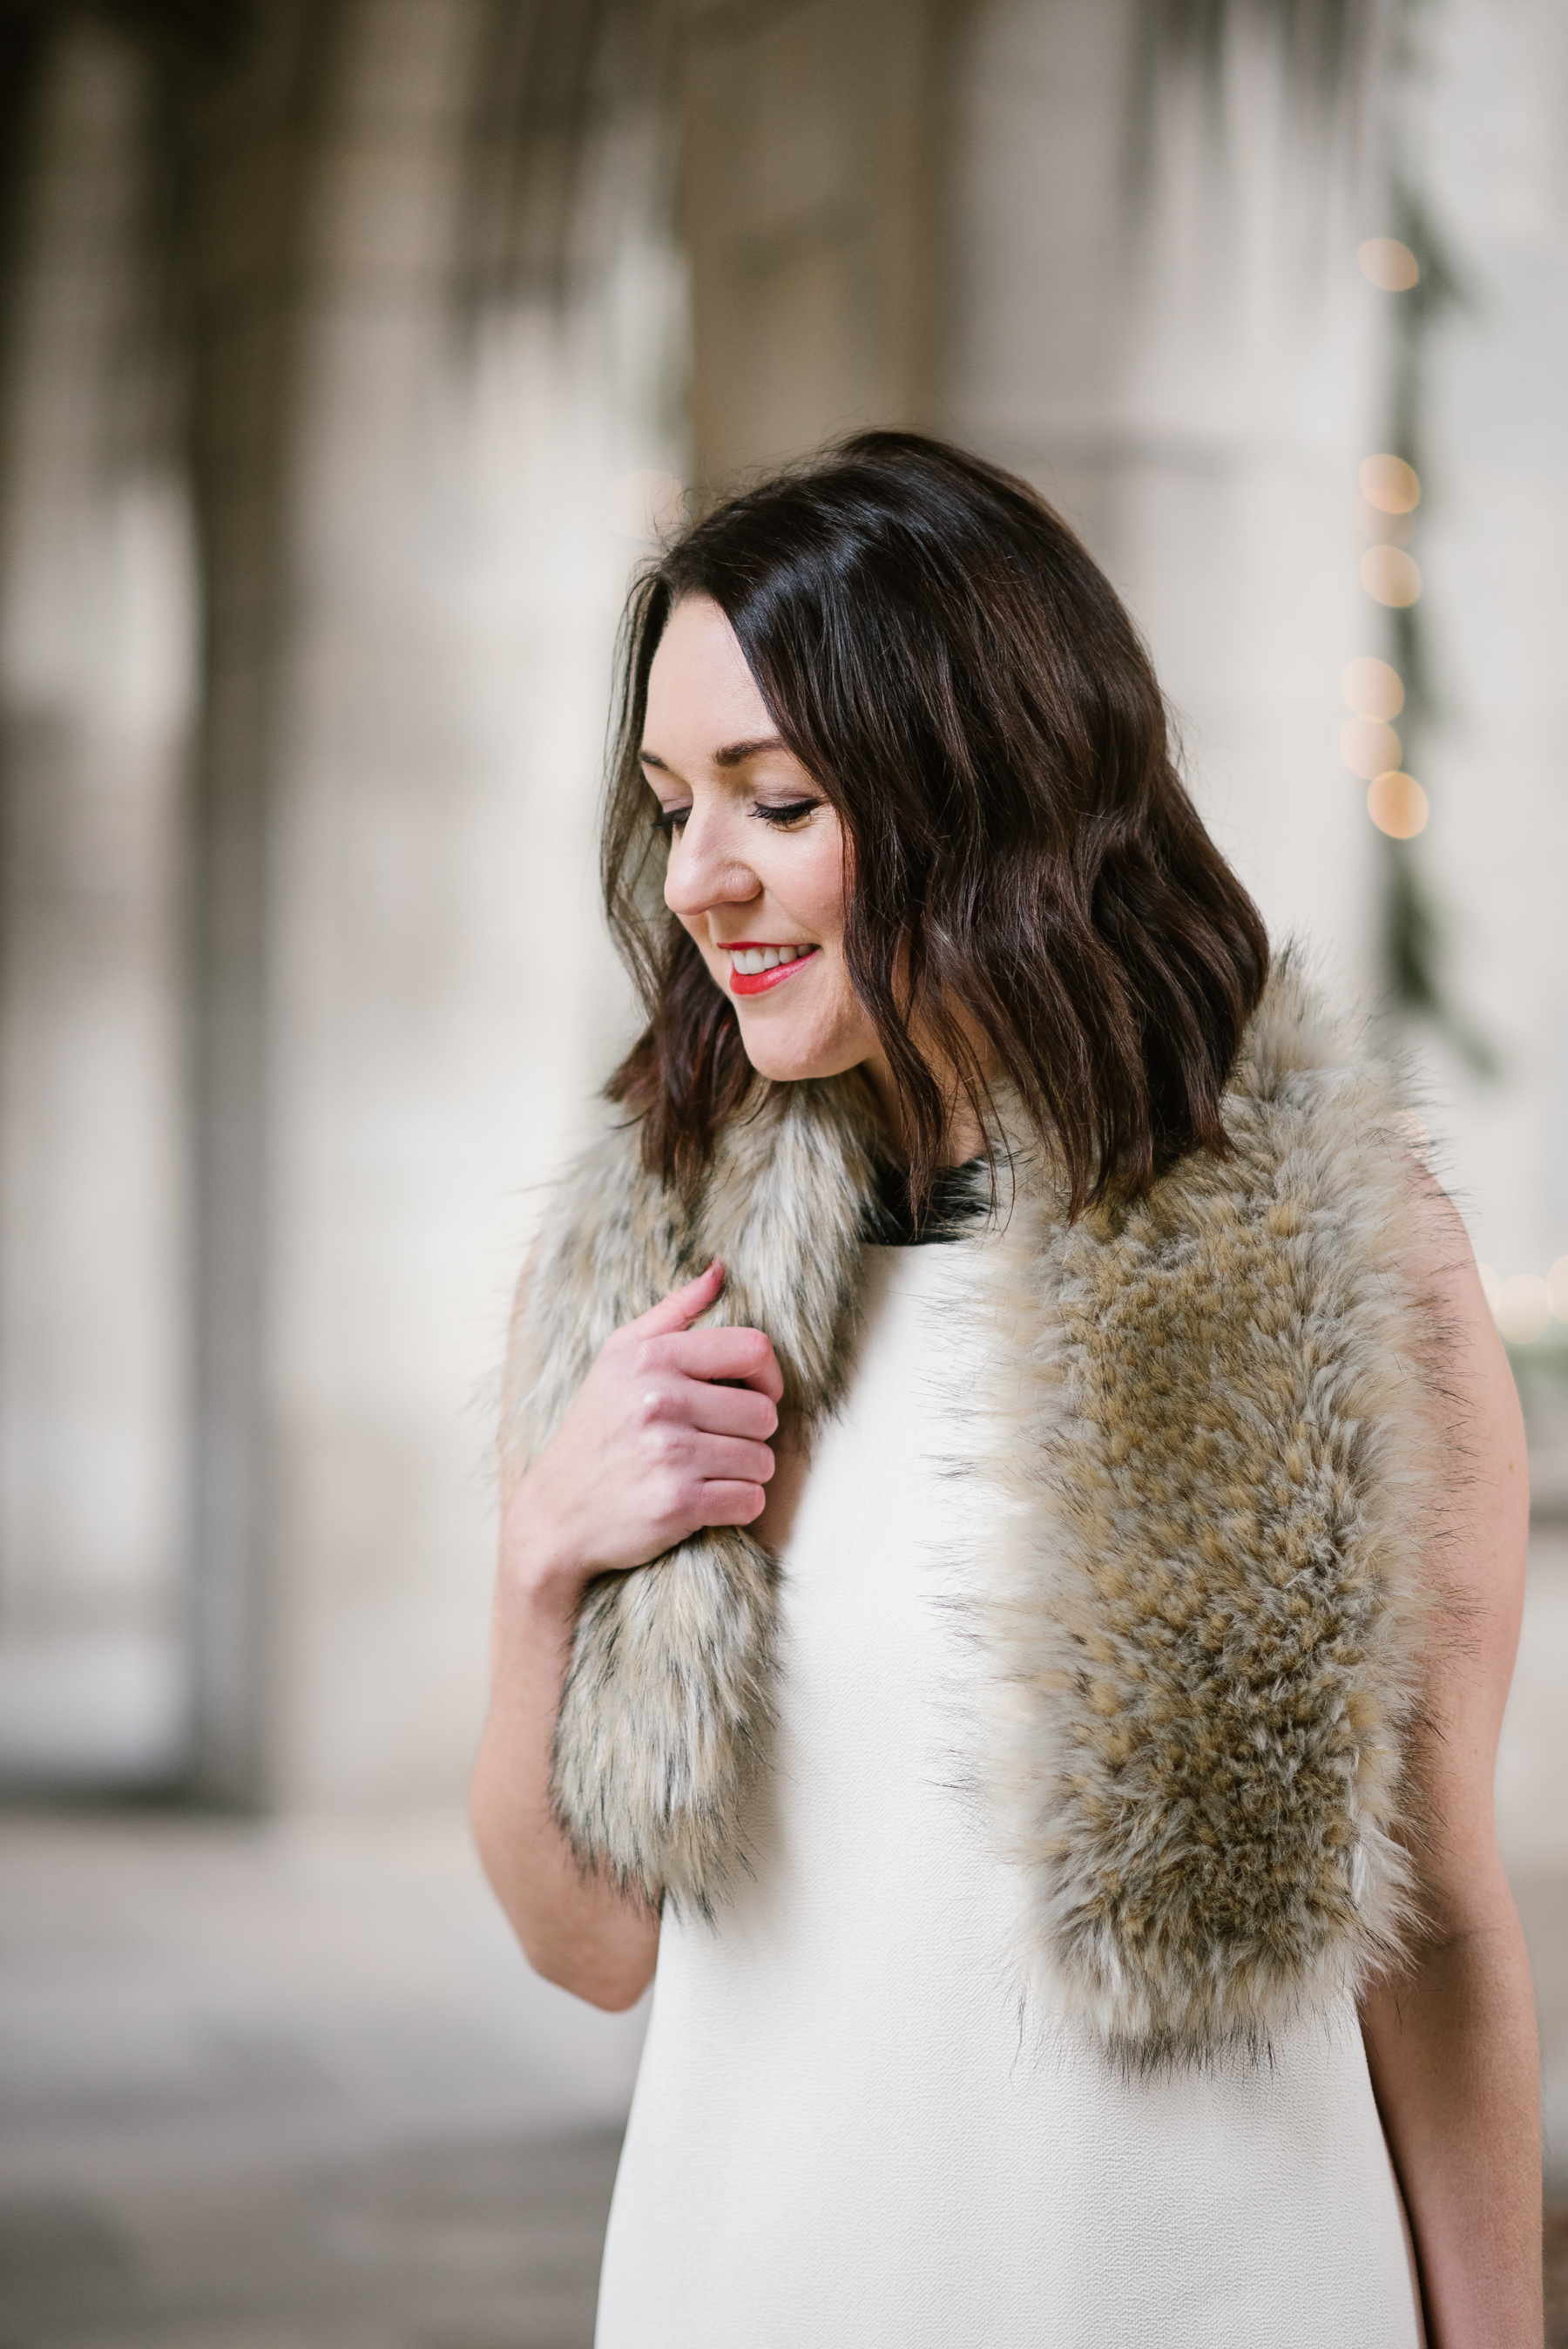 red lipstick and faux-fur